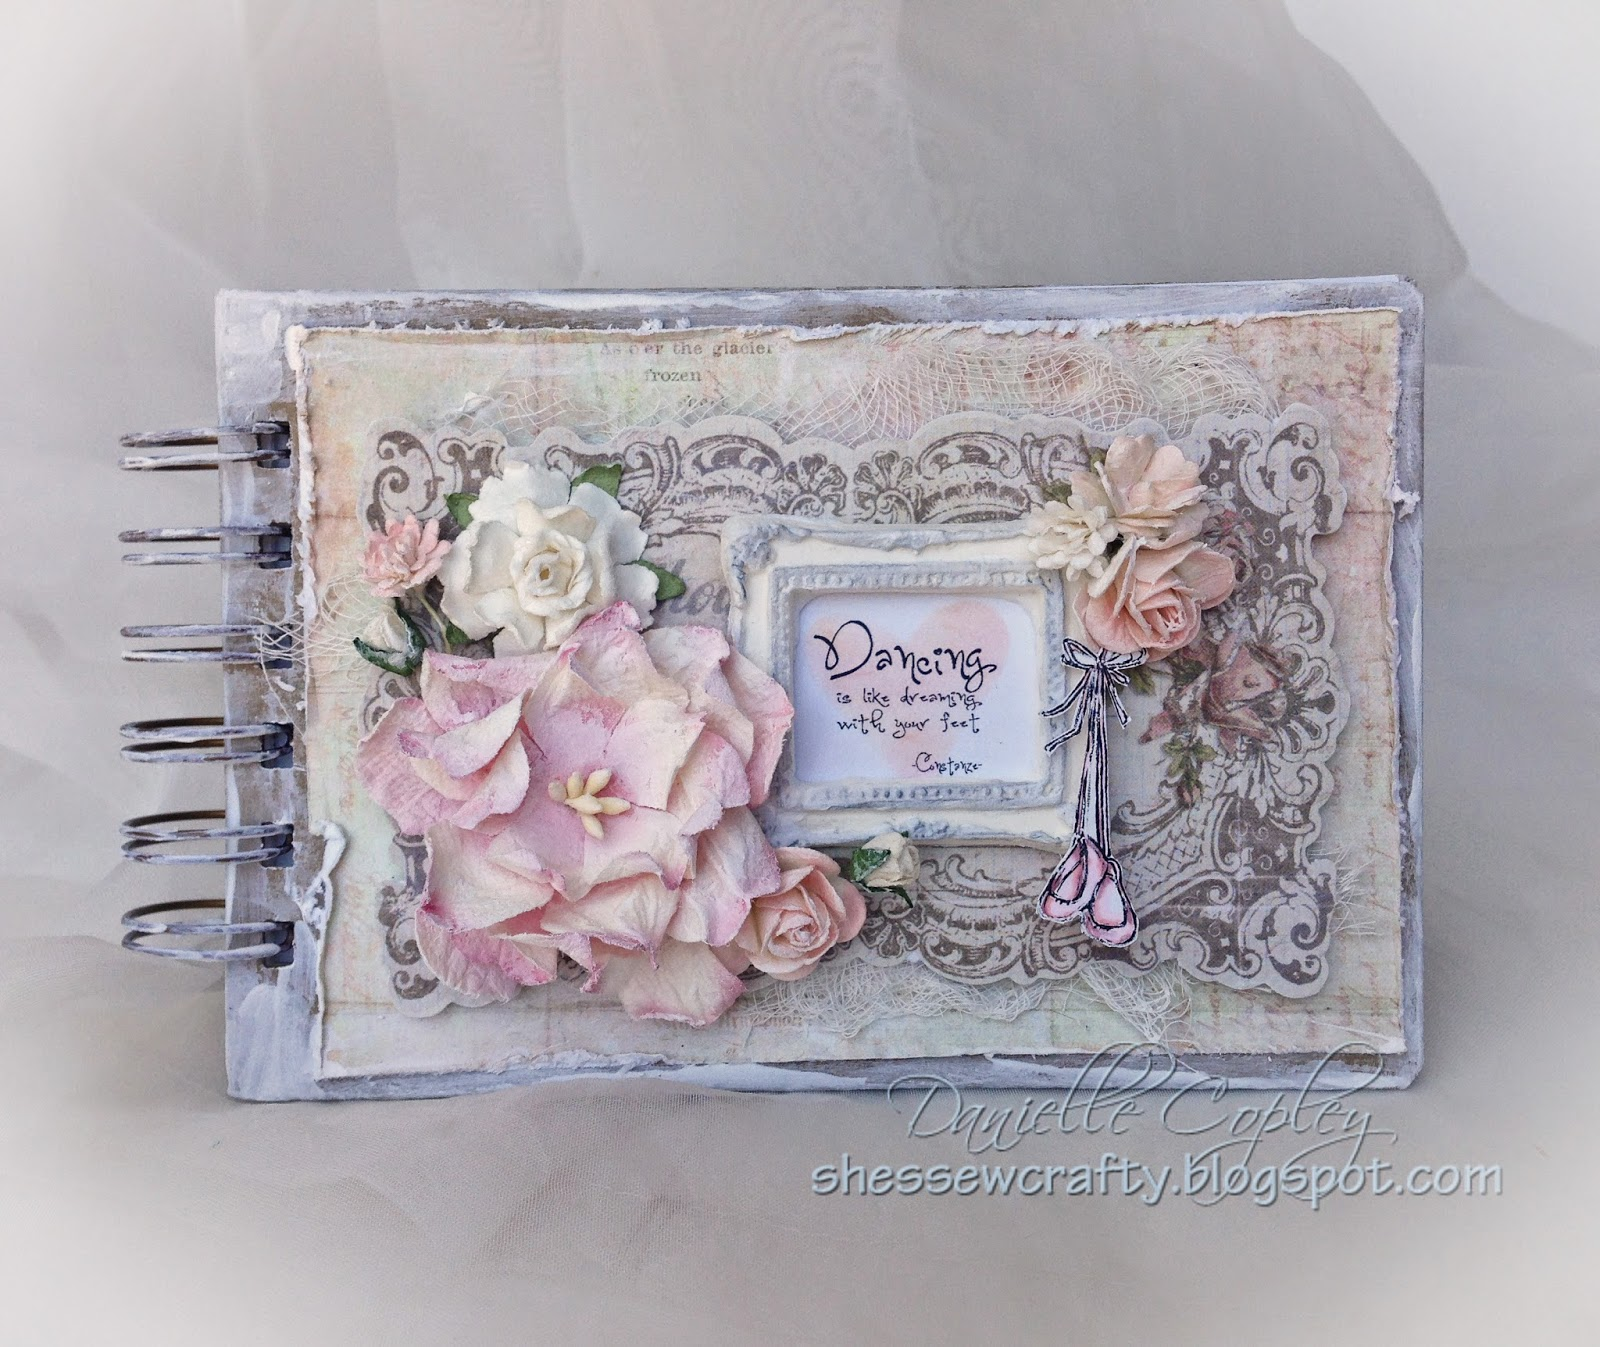 Tiny Dancer Elements image mini album using Prima Nature Garden and Prima Princess Collection